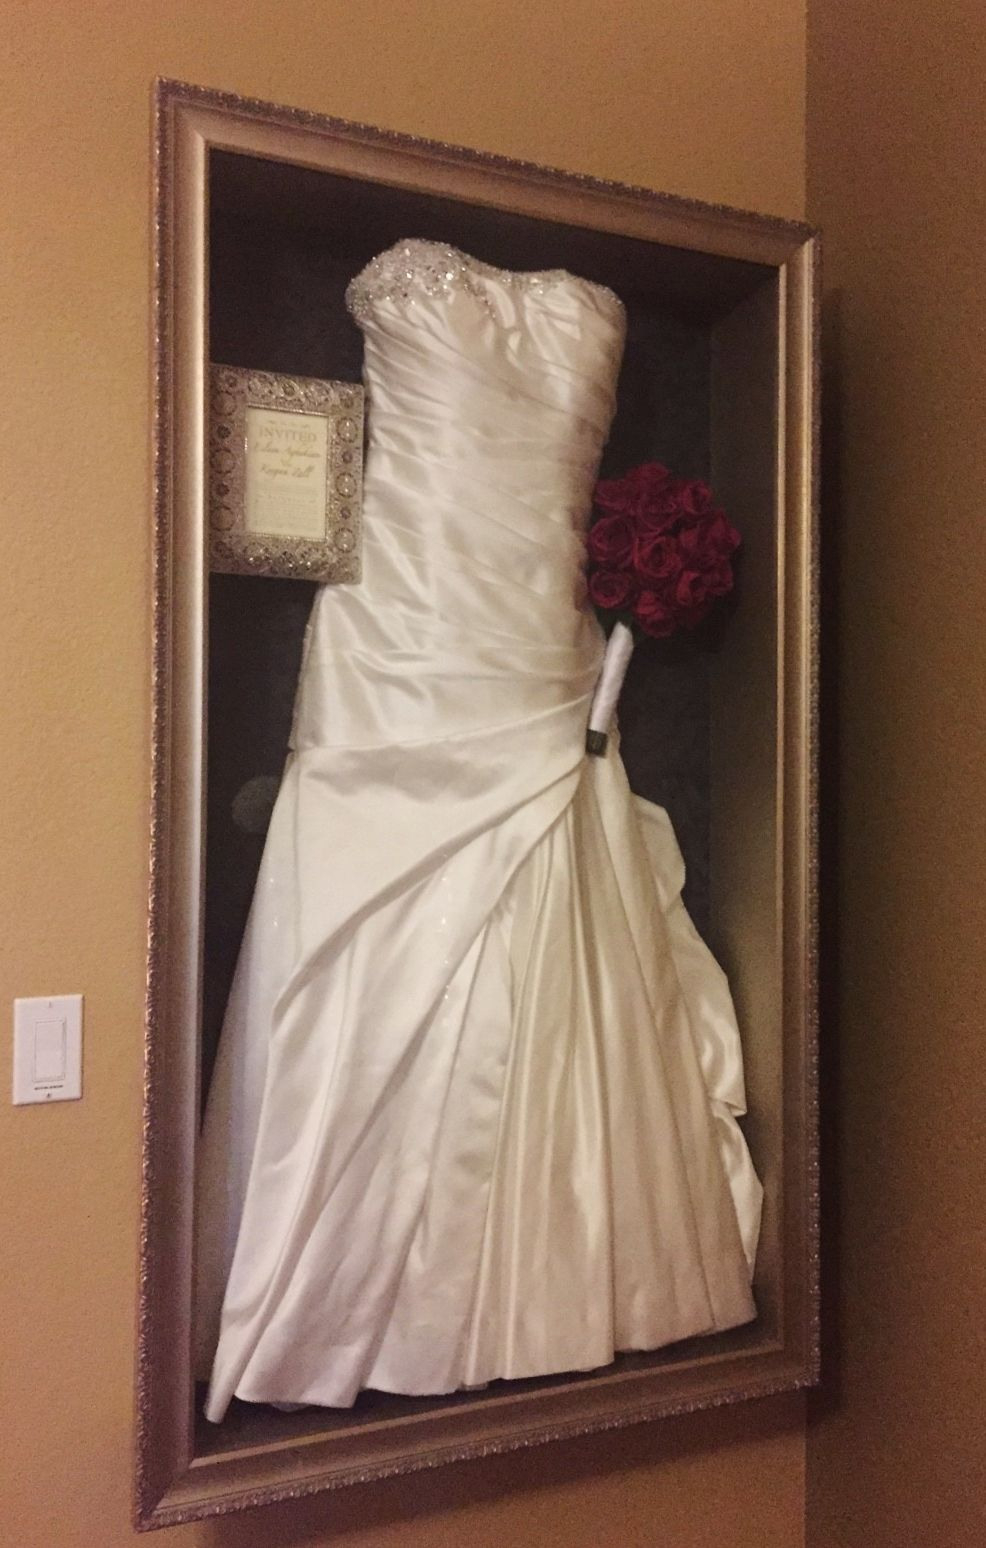 Framed Wedding Dress With Invitation And Bouquet Recessed